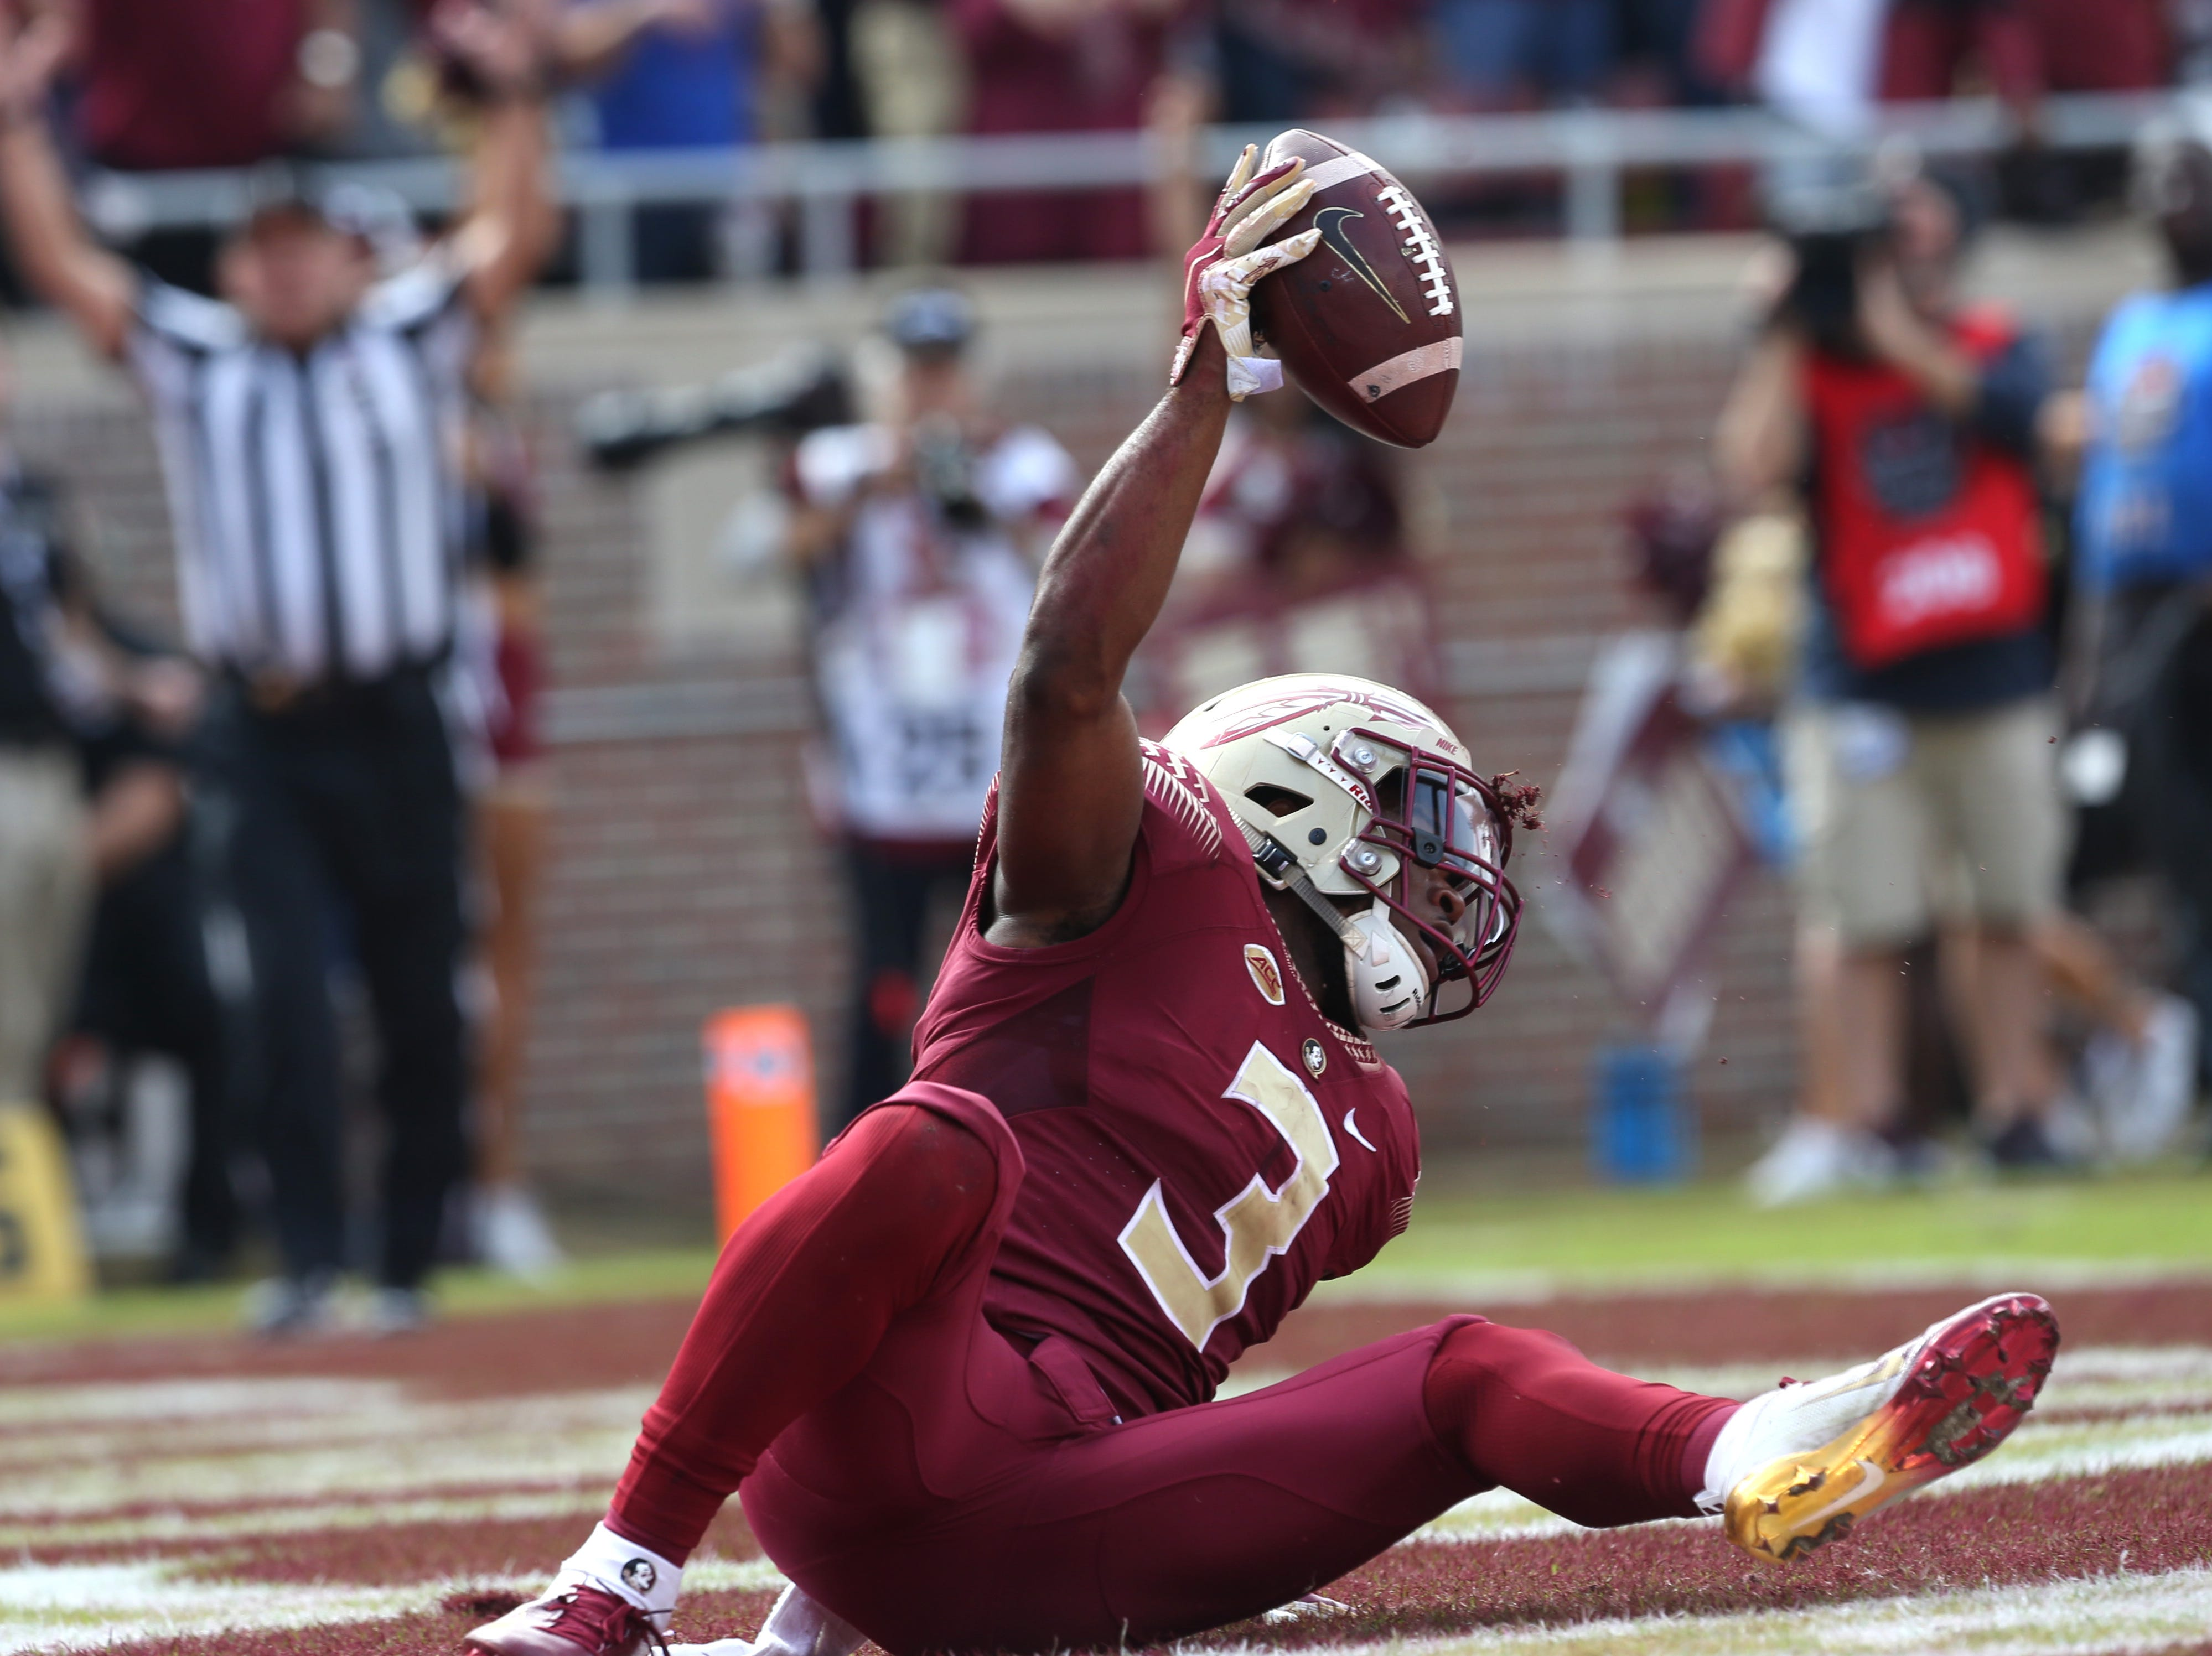 Florida State Seminoles running back Cam Akers (3) stumbles into the end zone for a touchdown as the Florida State Seminoles take on their rival the Florida Gators in college football at Doak S. Campbell Stadium, Saturday, Nov. 24, 2018.